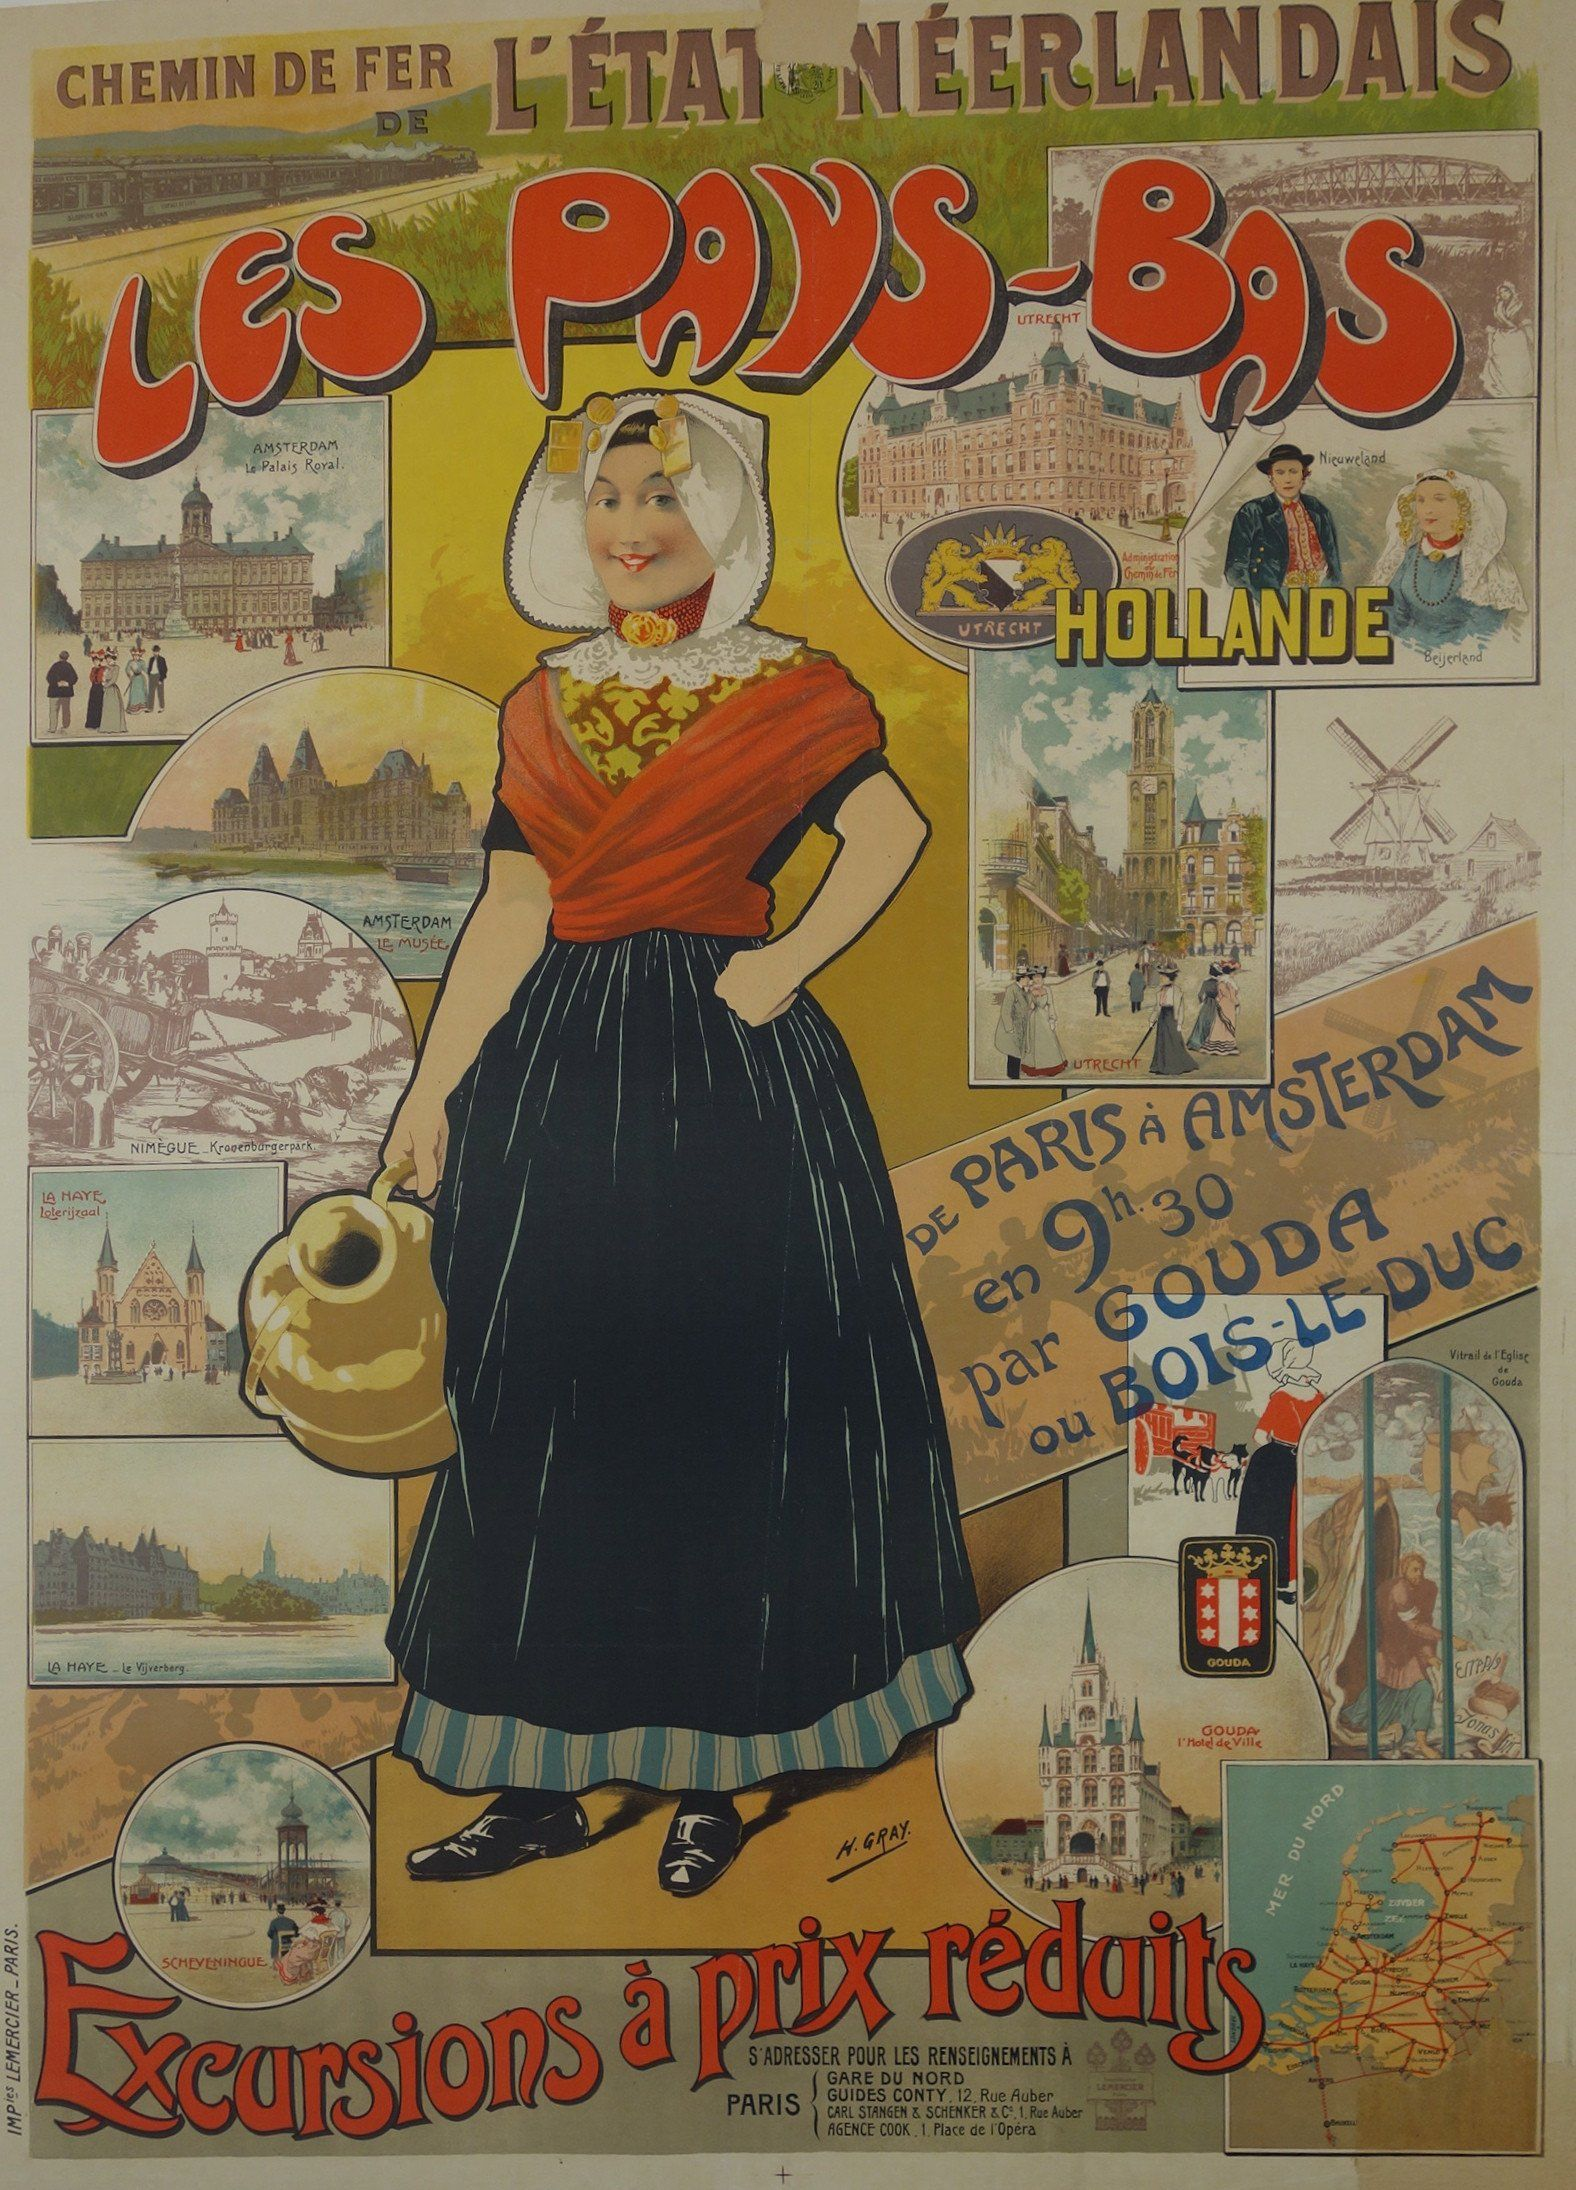 1895 Exposition Amsterdam Holland Netherlands Trip Vintage Poster Repro FREE S//H